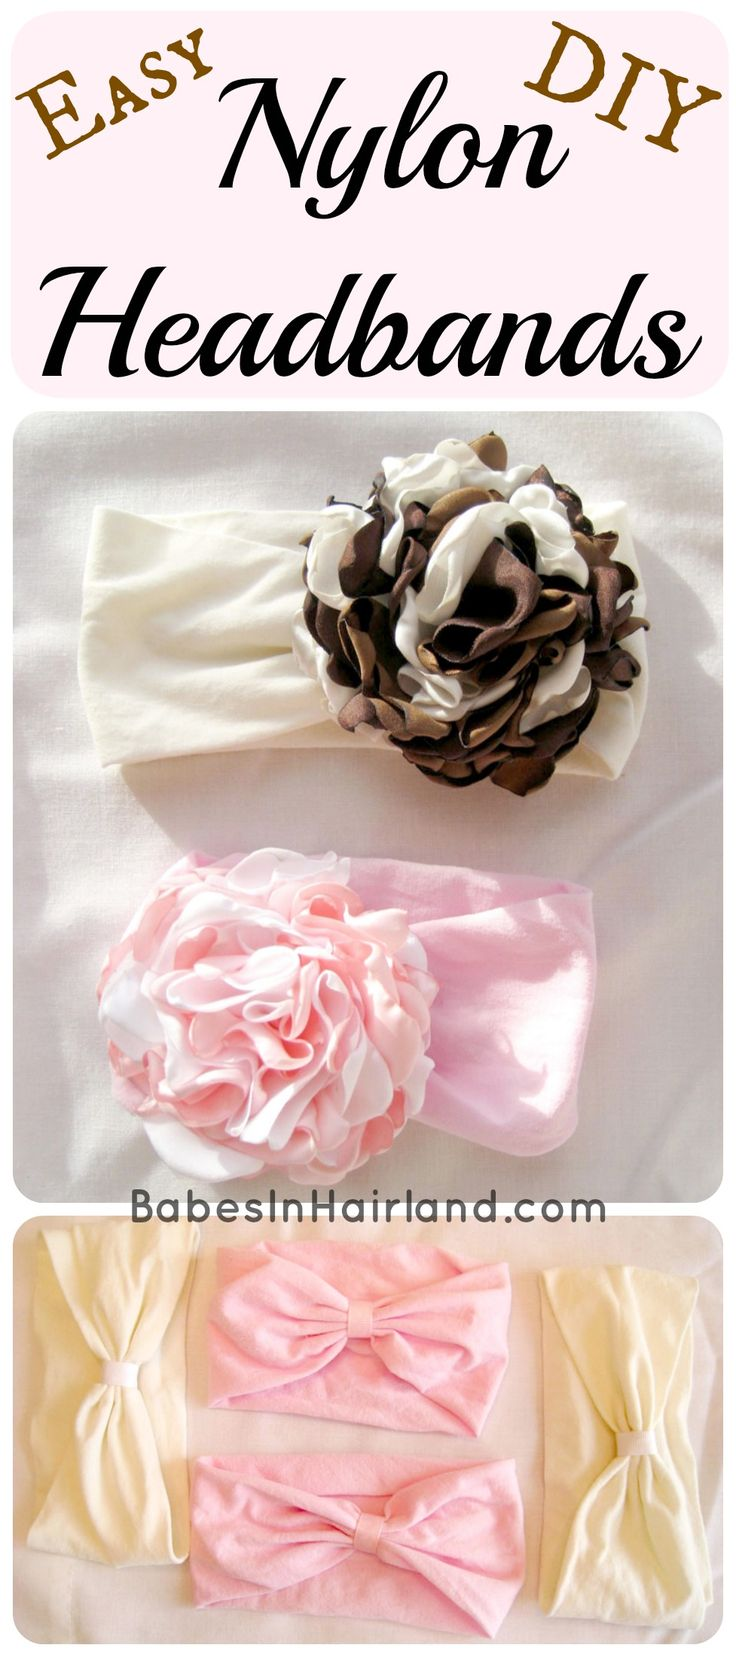 Easy-DIY-Nylon-Headbands